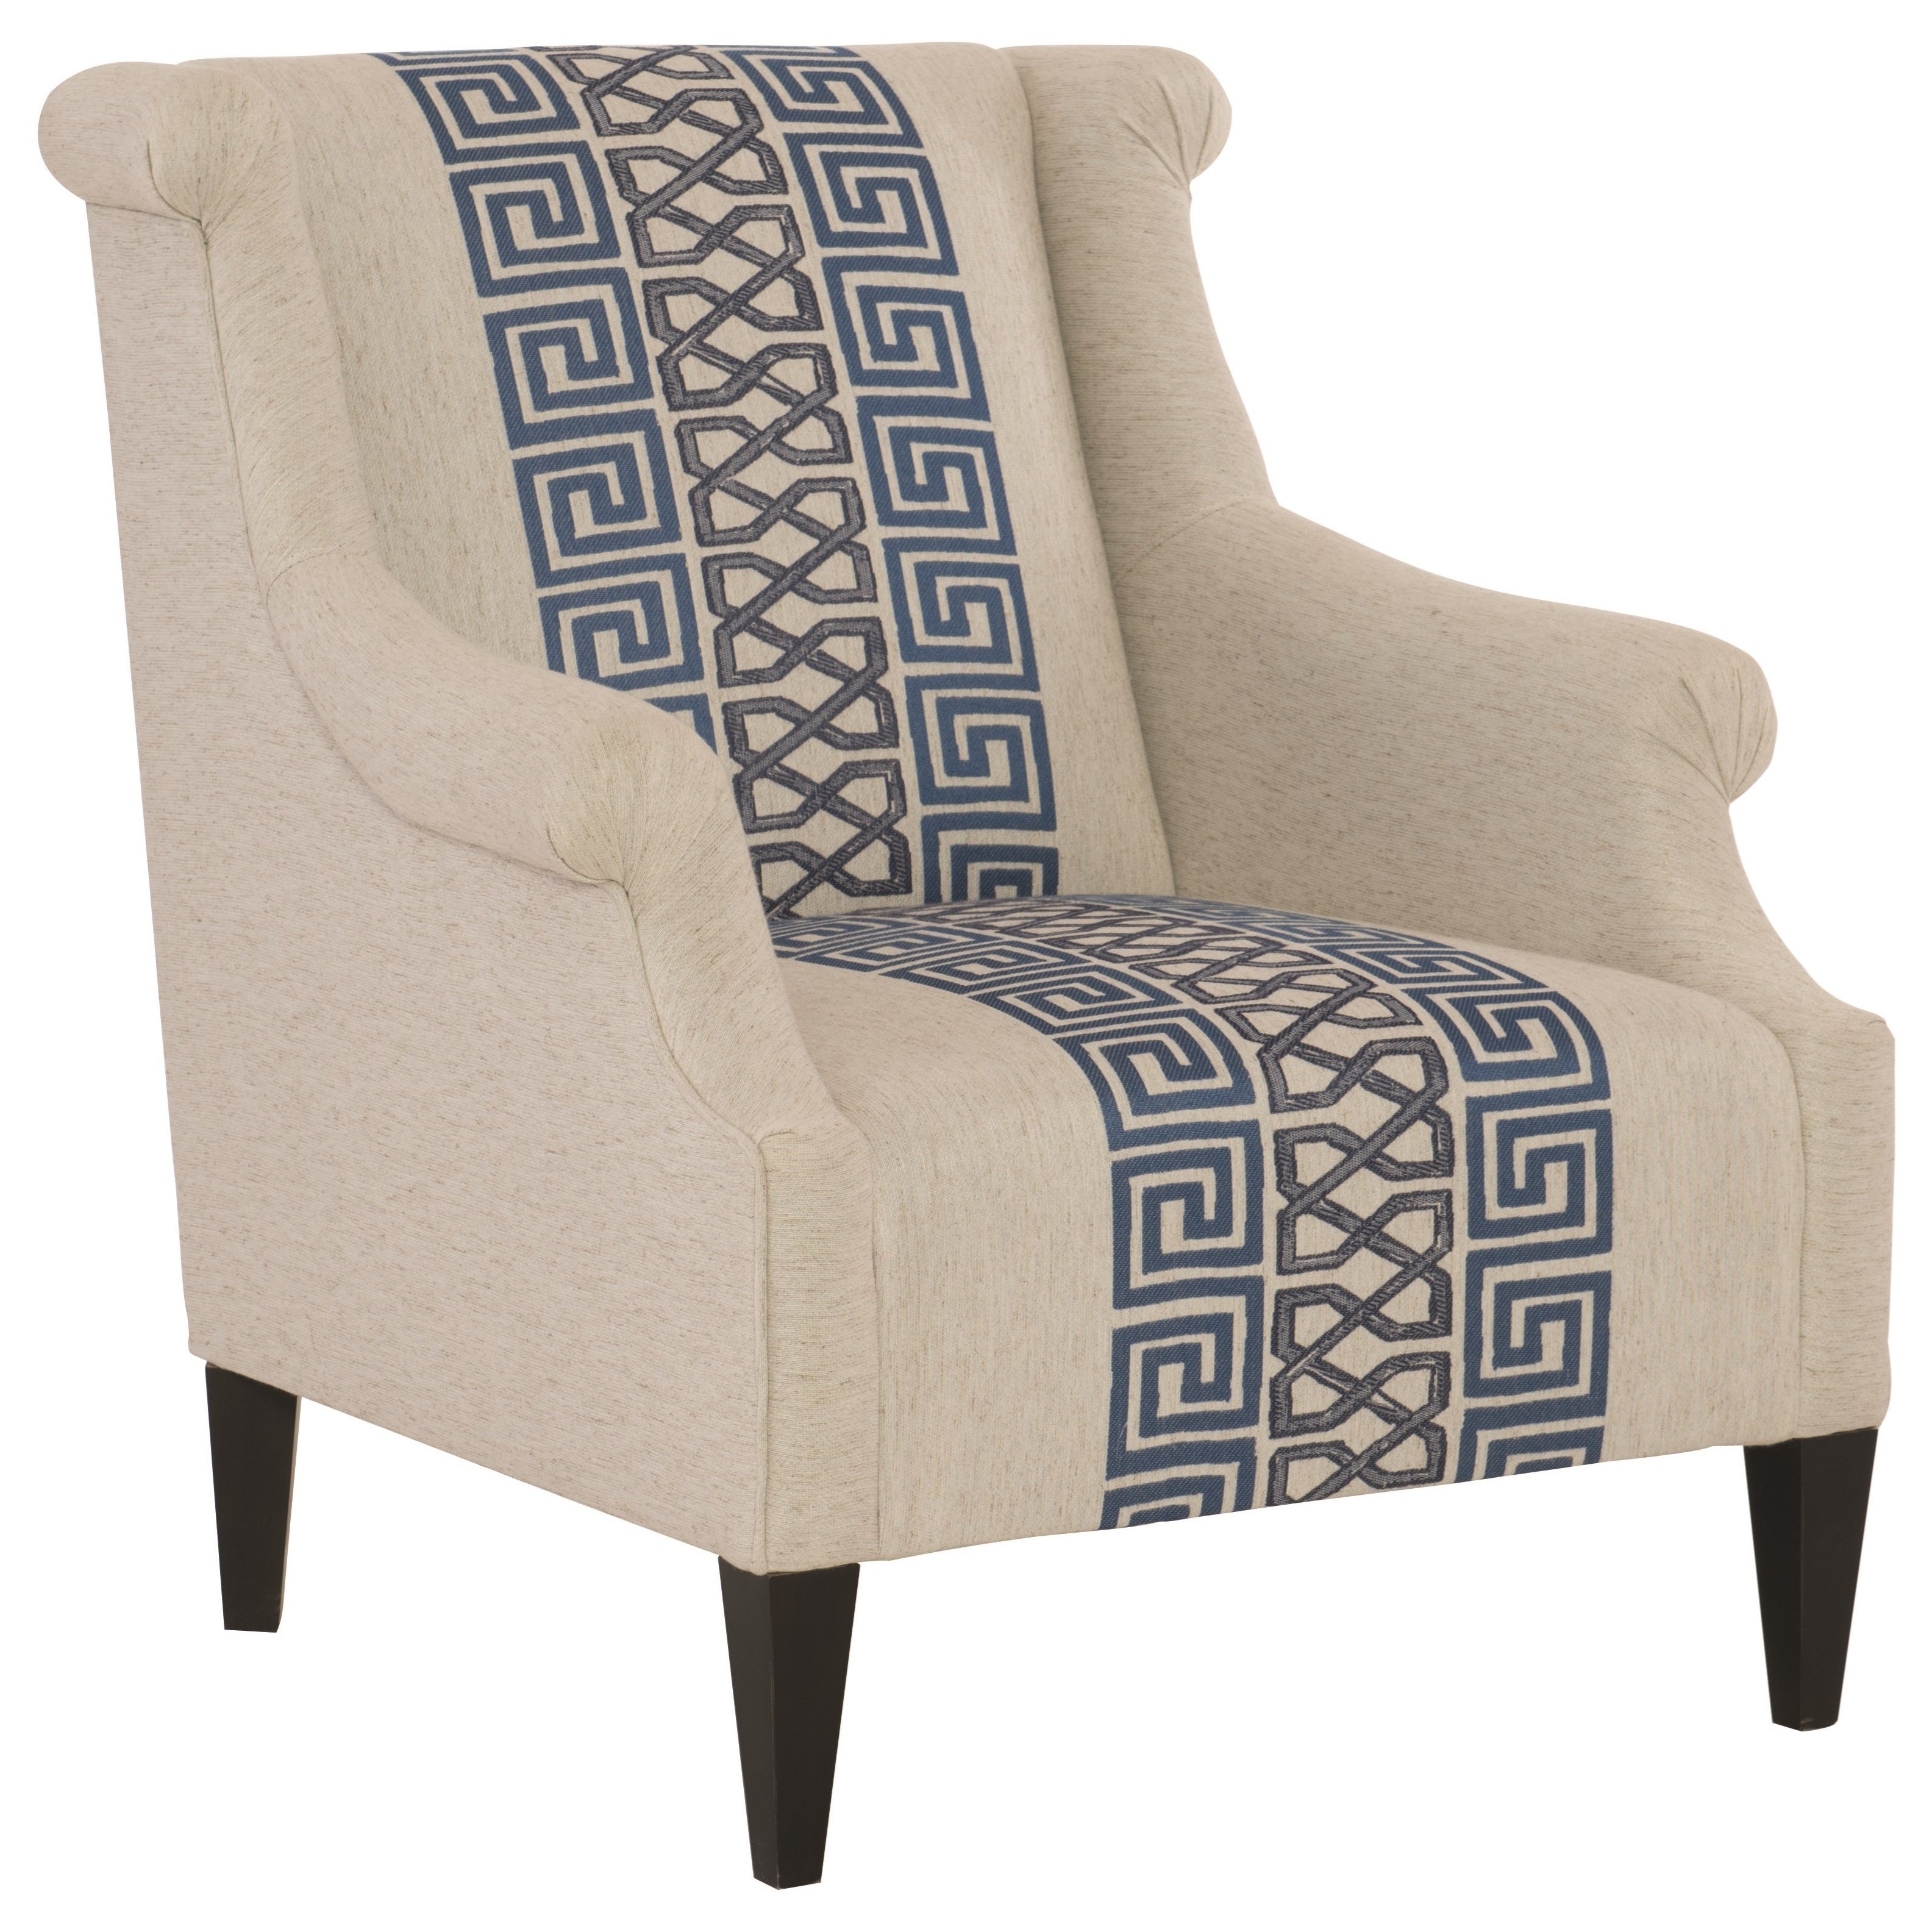 Cloth Chairs Furniture. Bernhardt Upholstered AccentsGaby Chair Cloth Chairs  Furniture